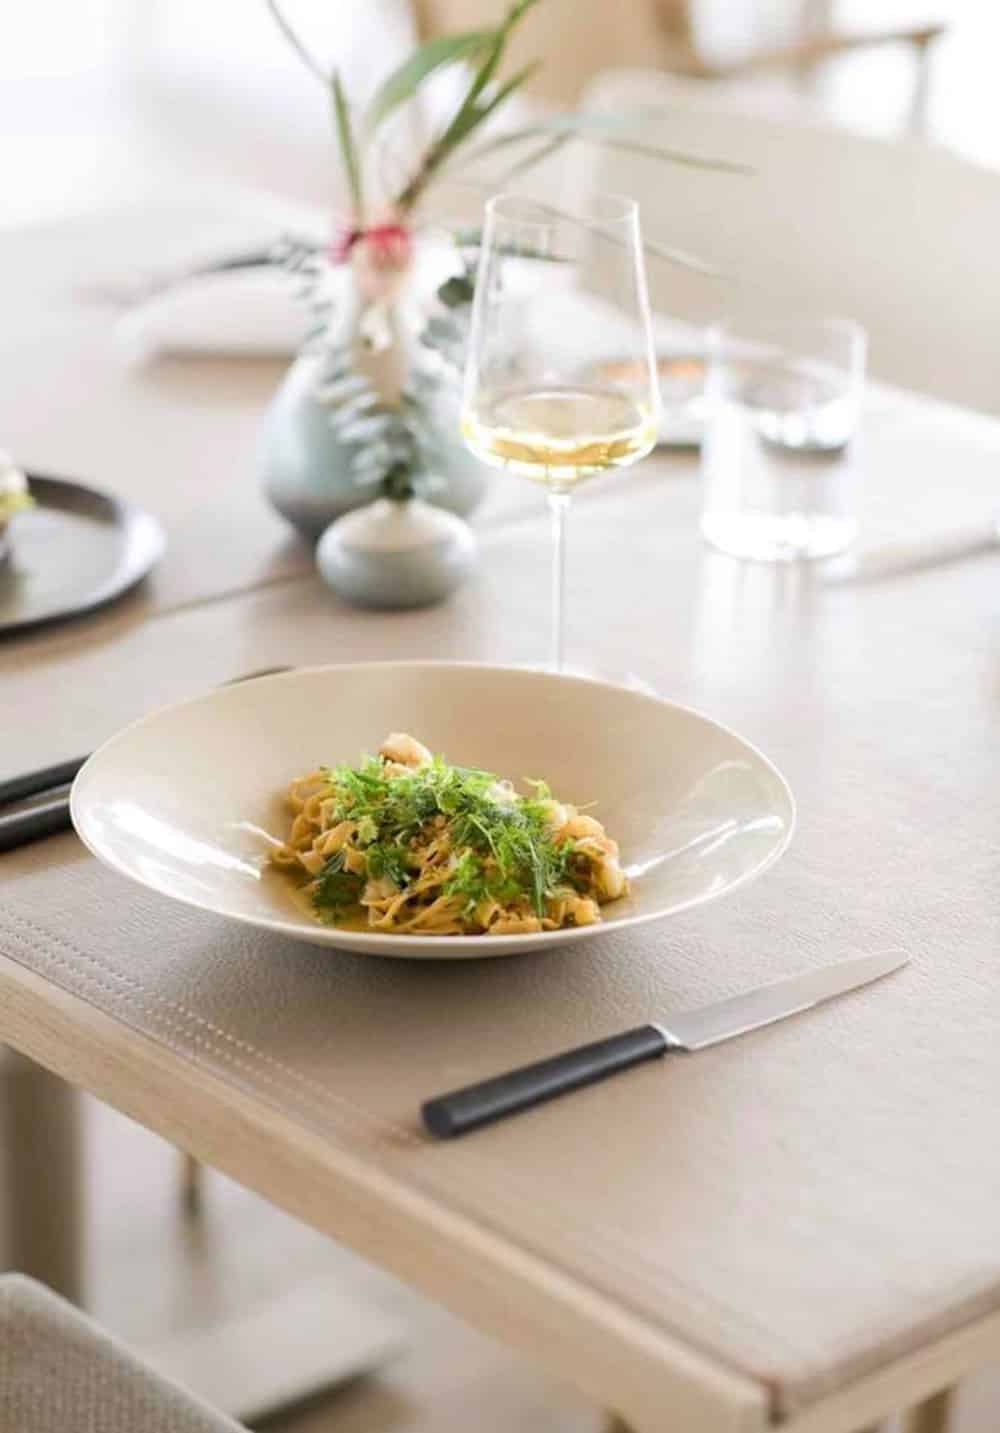 Pt. Leo Estate Wine and pasta with micro greens as garnish served in white bowl on wooden table